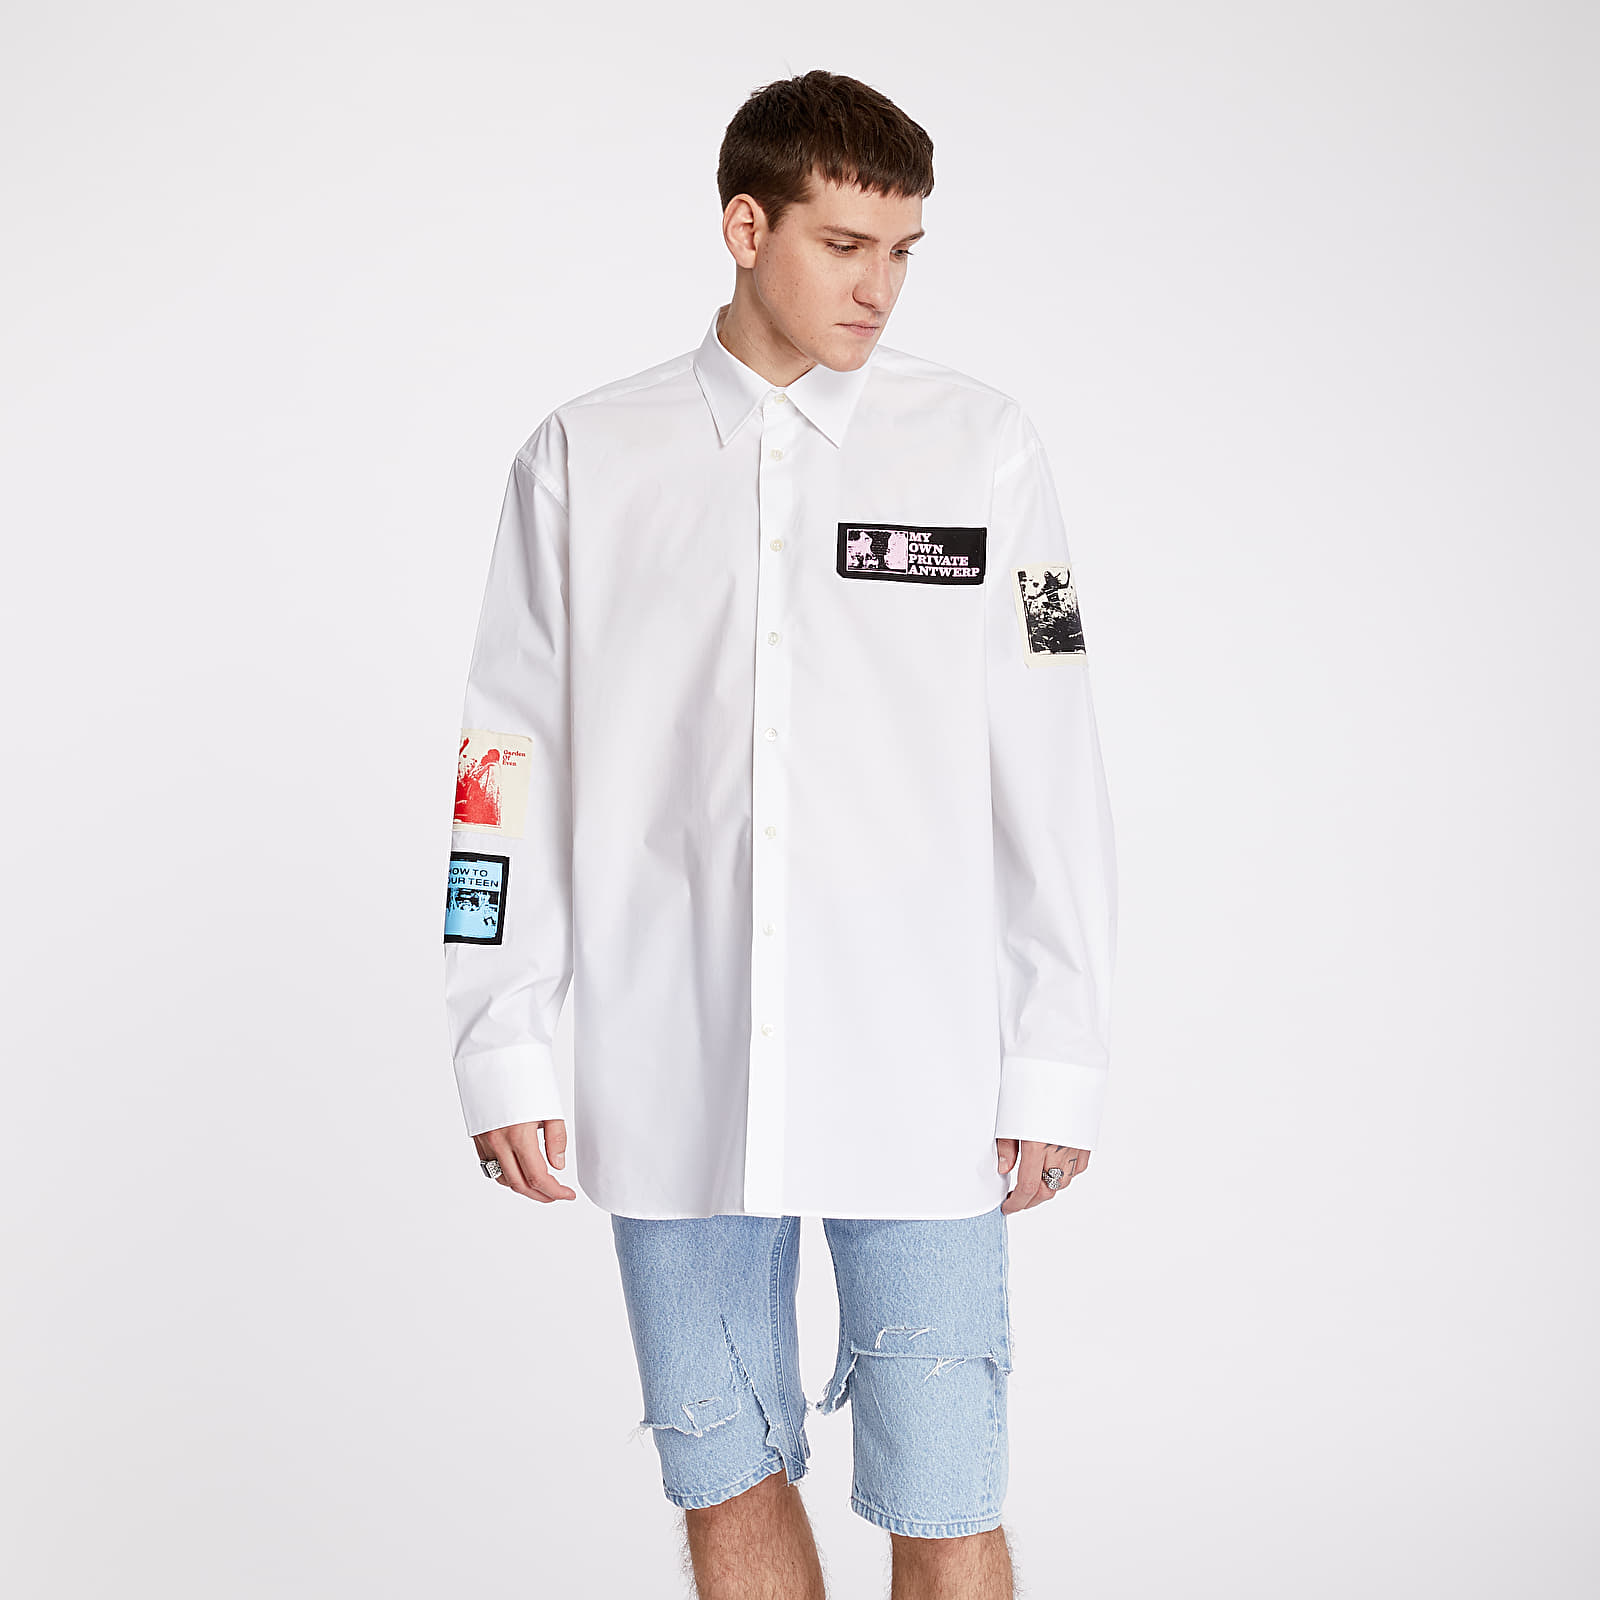 Shirts RAF SIMONS Oversized Shirt White